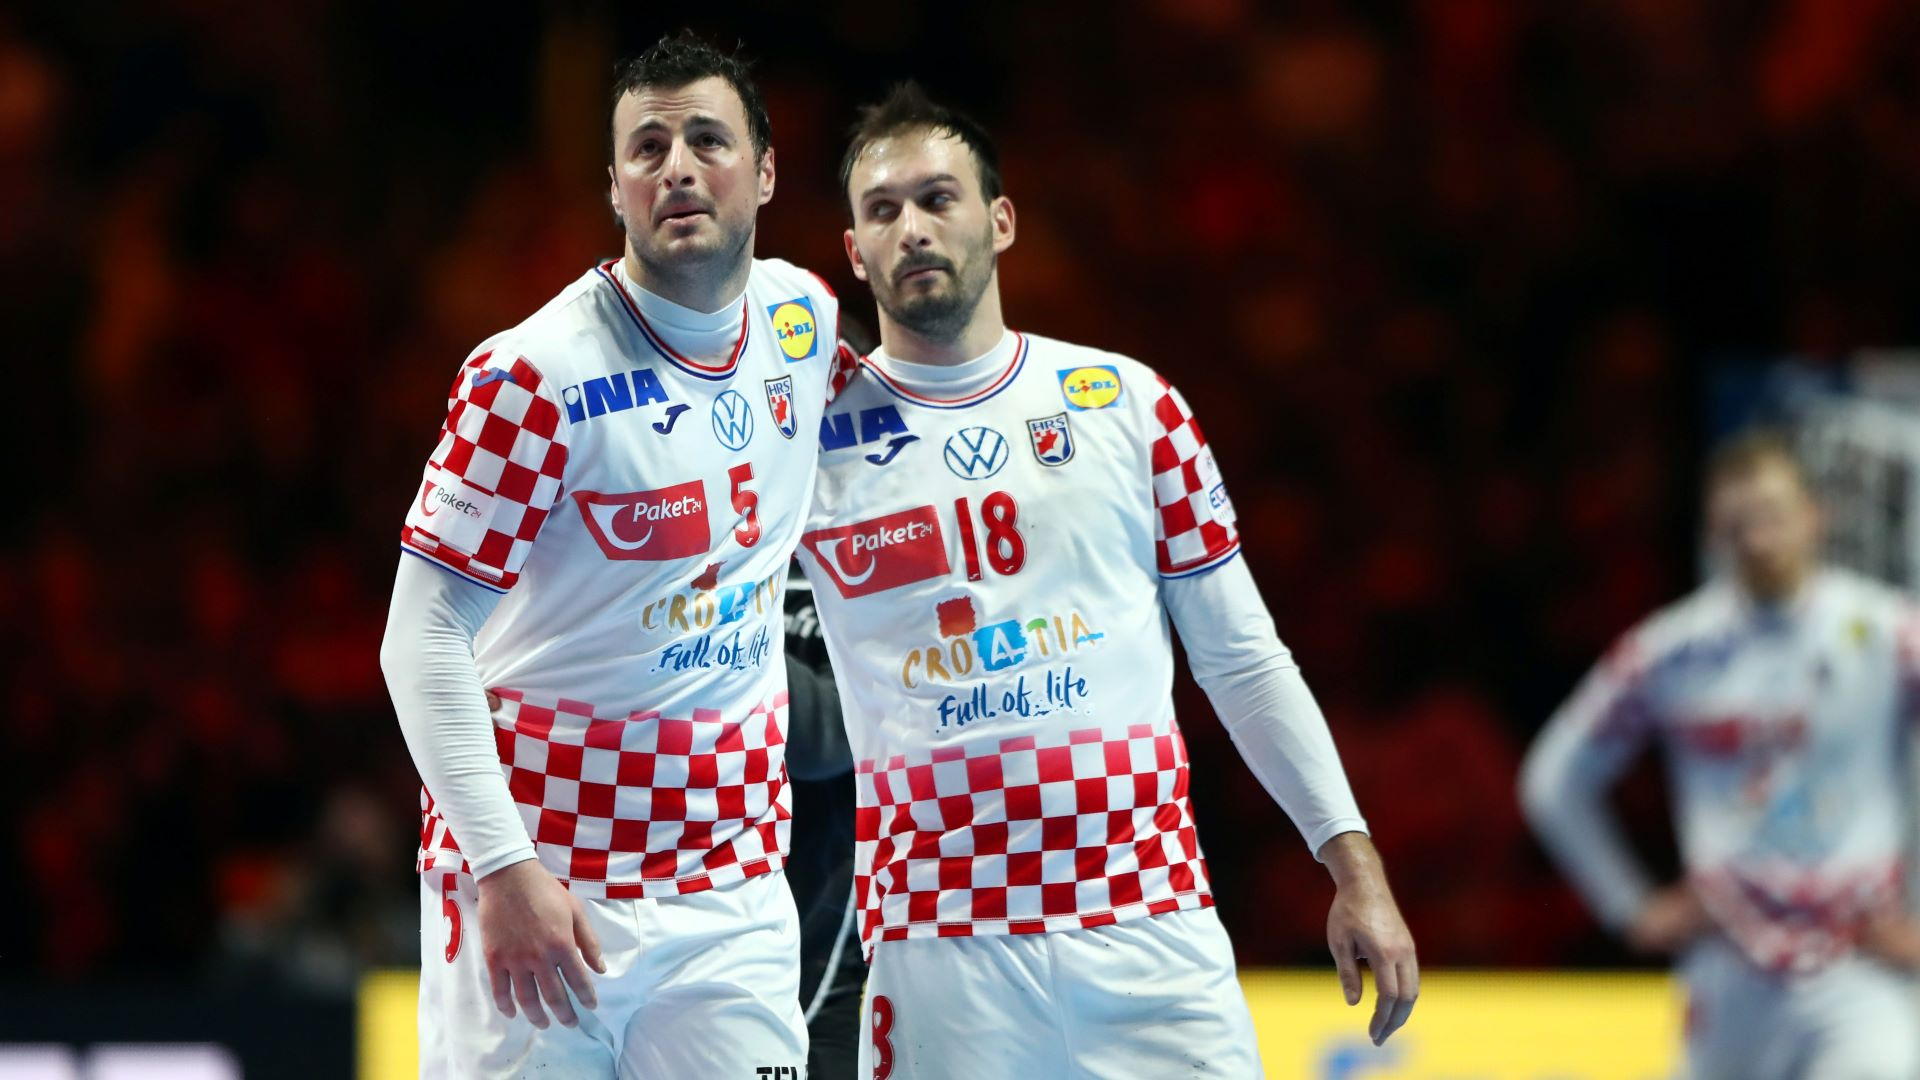 handball wm 2021 kroatien vs katar